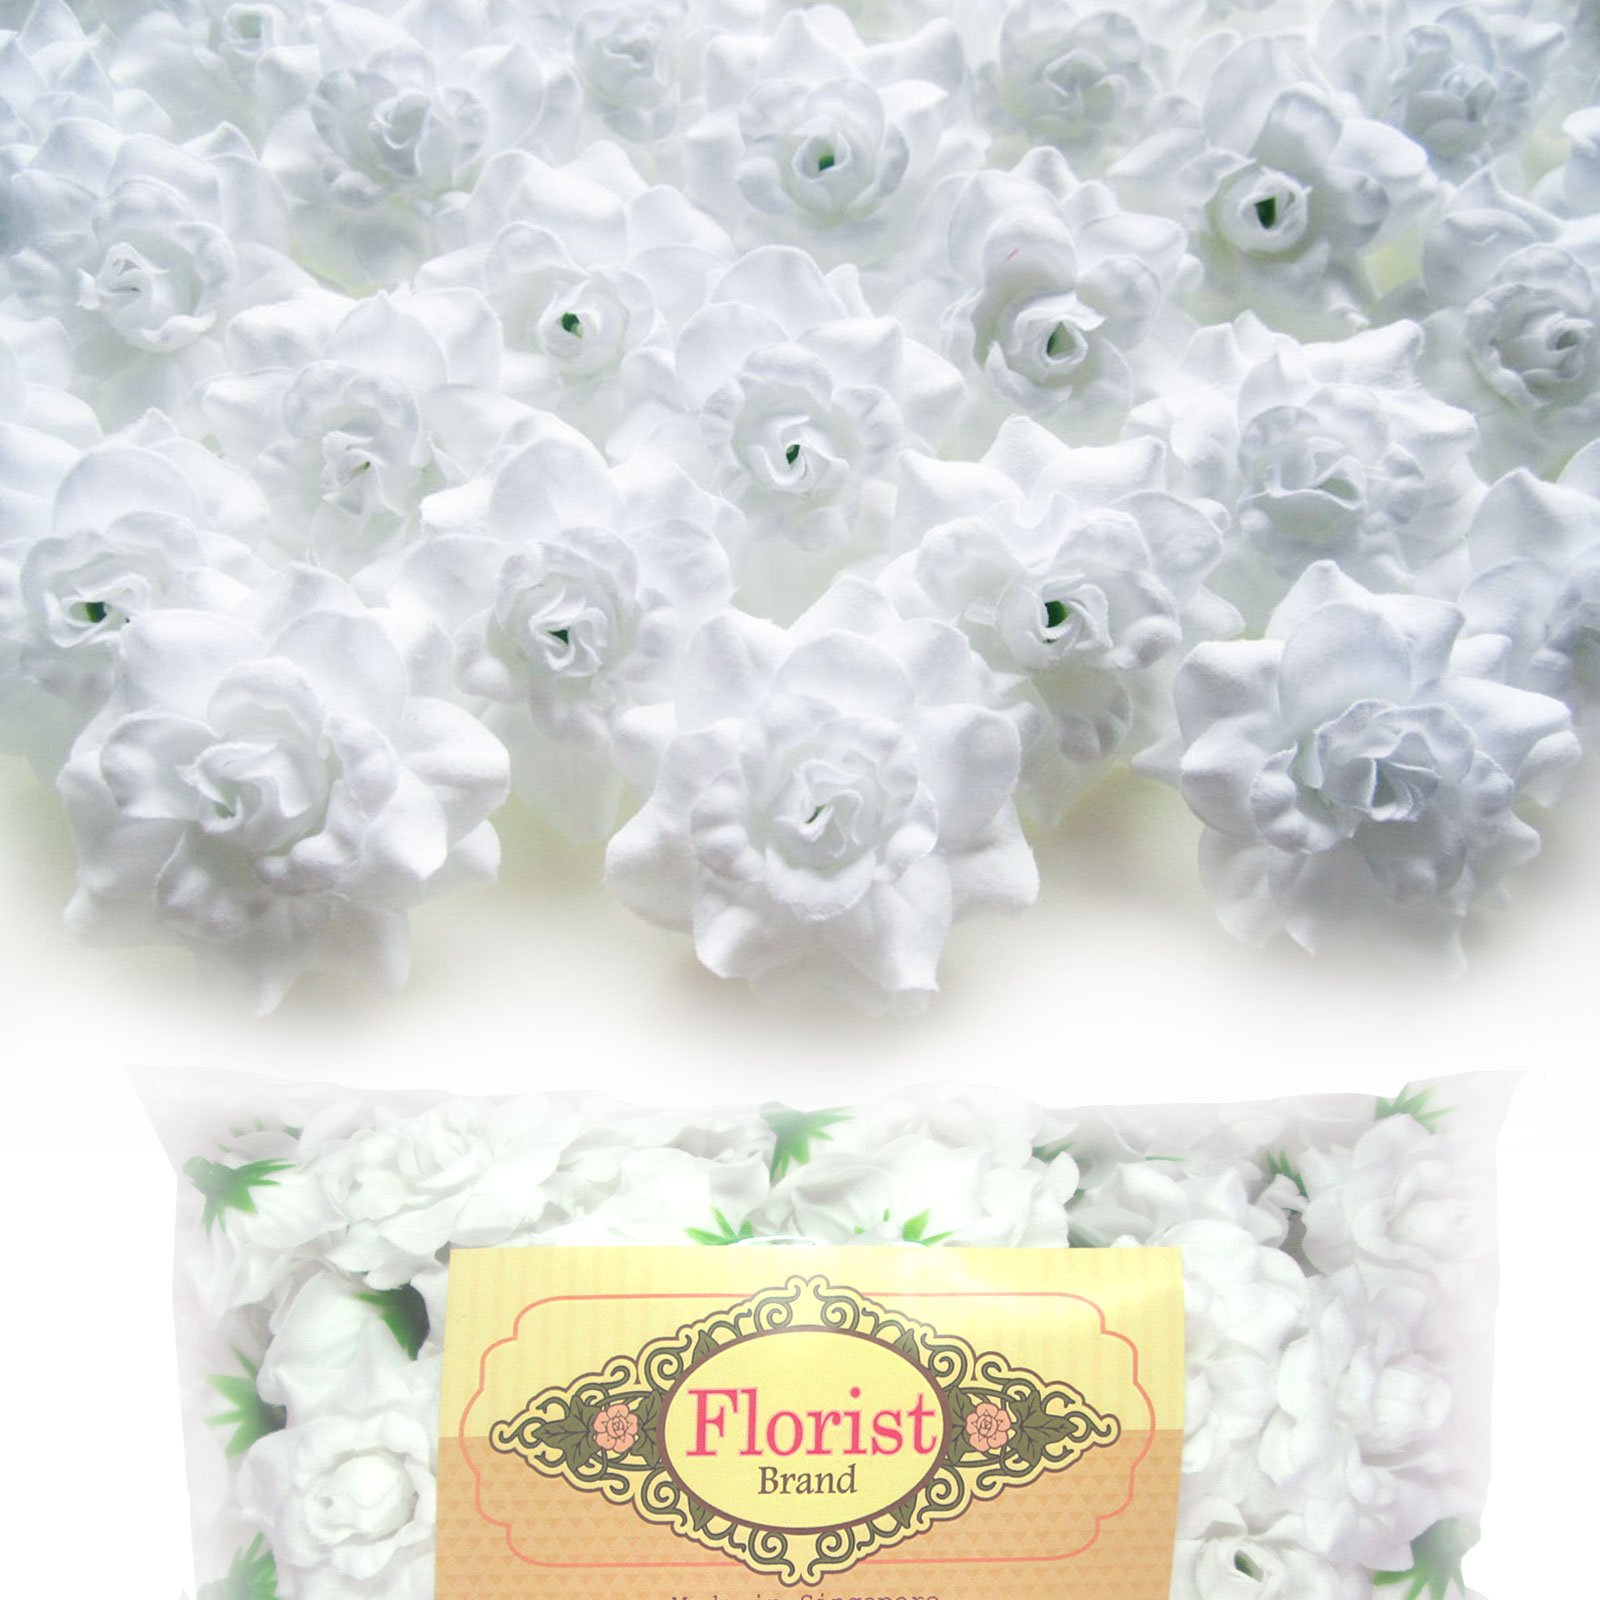 100-Silk-White-Roses-Flower-Head-175-Artificial-Flowers-Heads-Fabric-Floral-Supplies-Wholesale-Lot-for-Wedding-Flowers-Accessories-Make-Bridal-Hair-Clips-Headbands-Dress